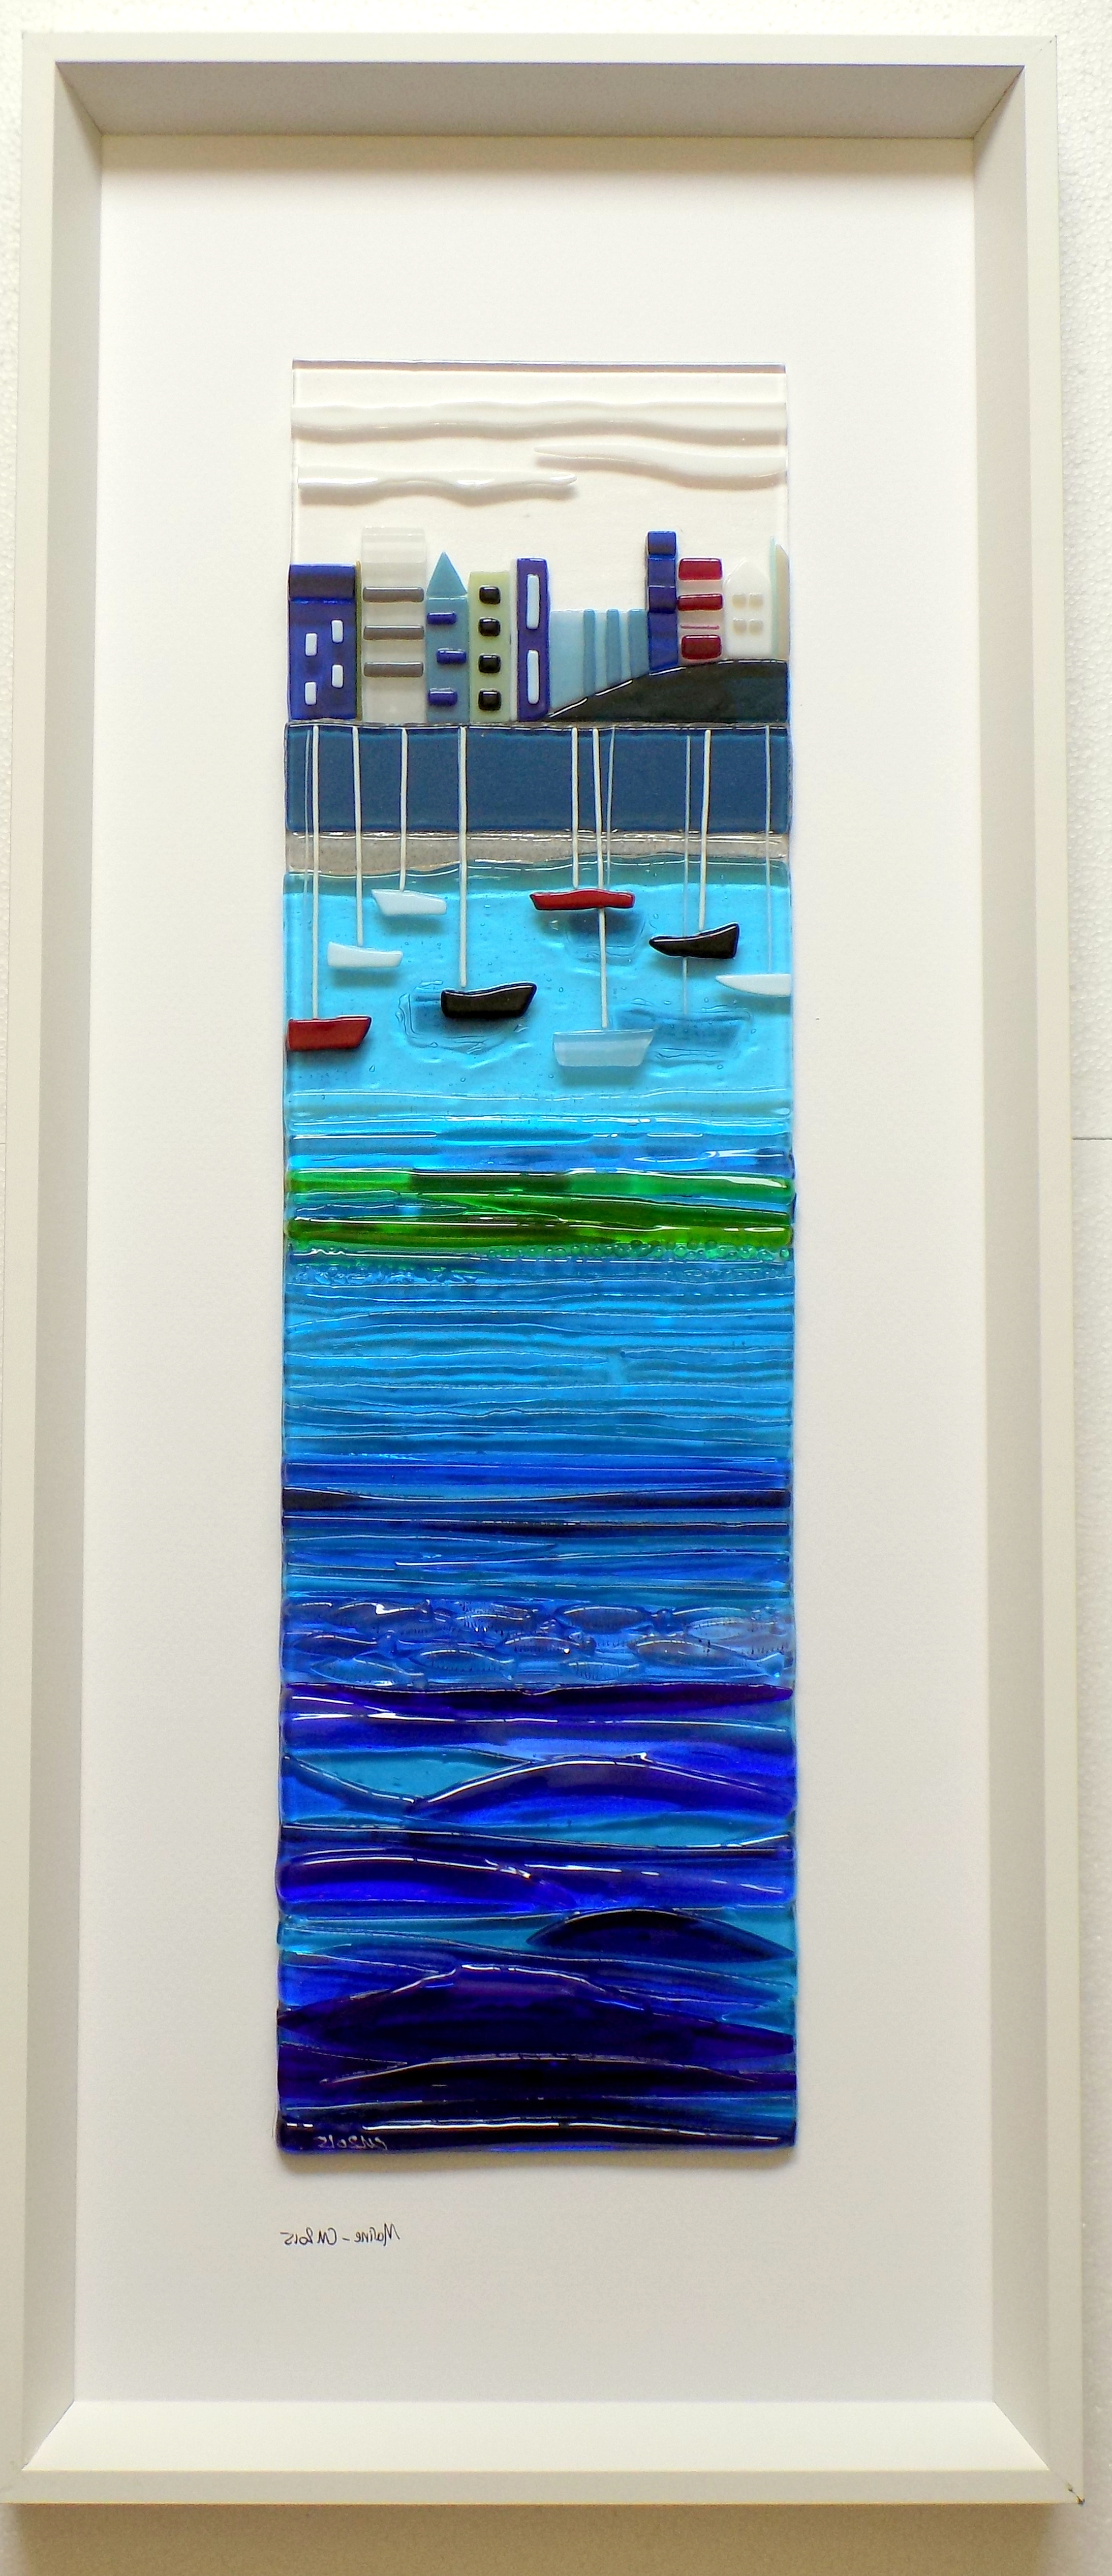 2018 Large Fused Glass Wall Art Within Large Framed Panels u2013 Inlight u2013 Contemporary Fused Glass & View Gallery of Large Fused Glass Wall Art (Showing 4 of 15 Photos)